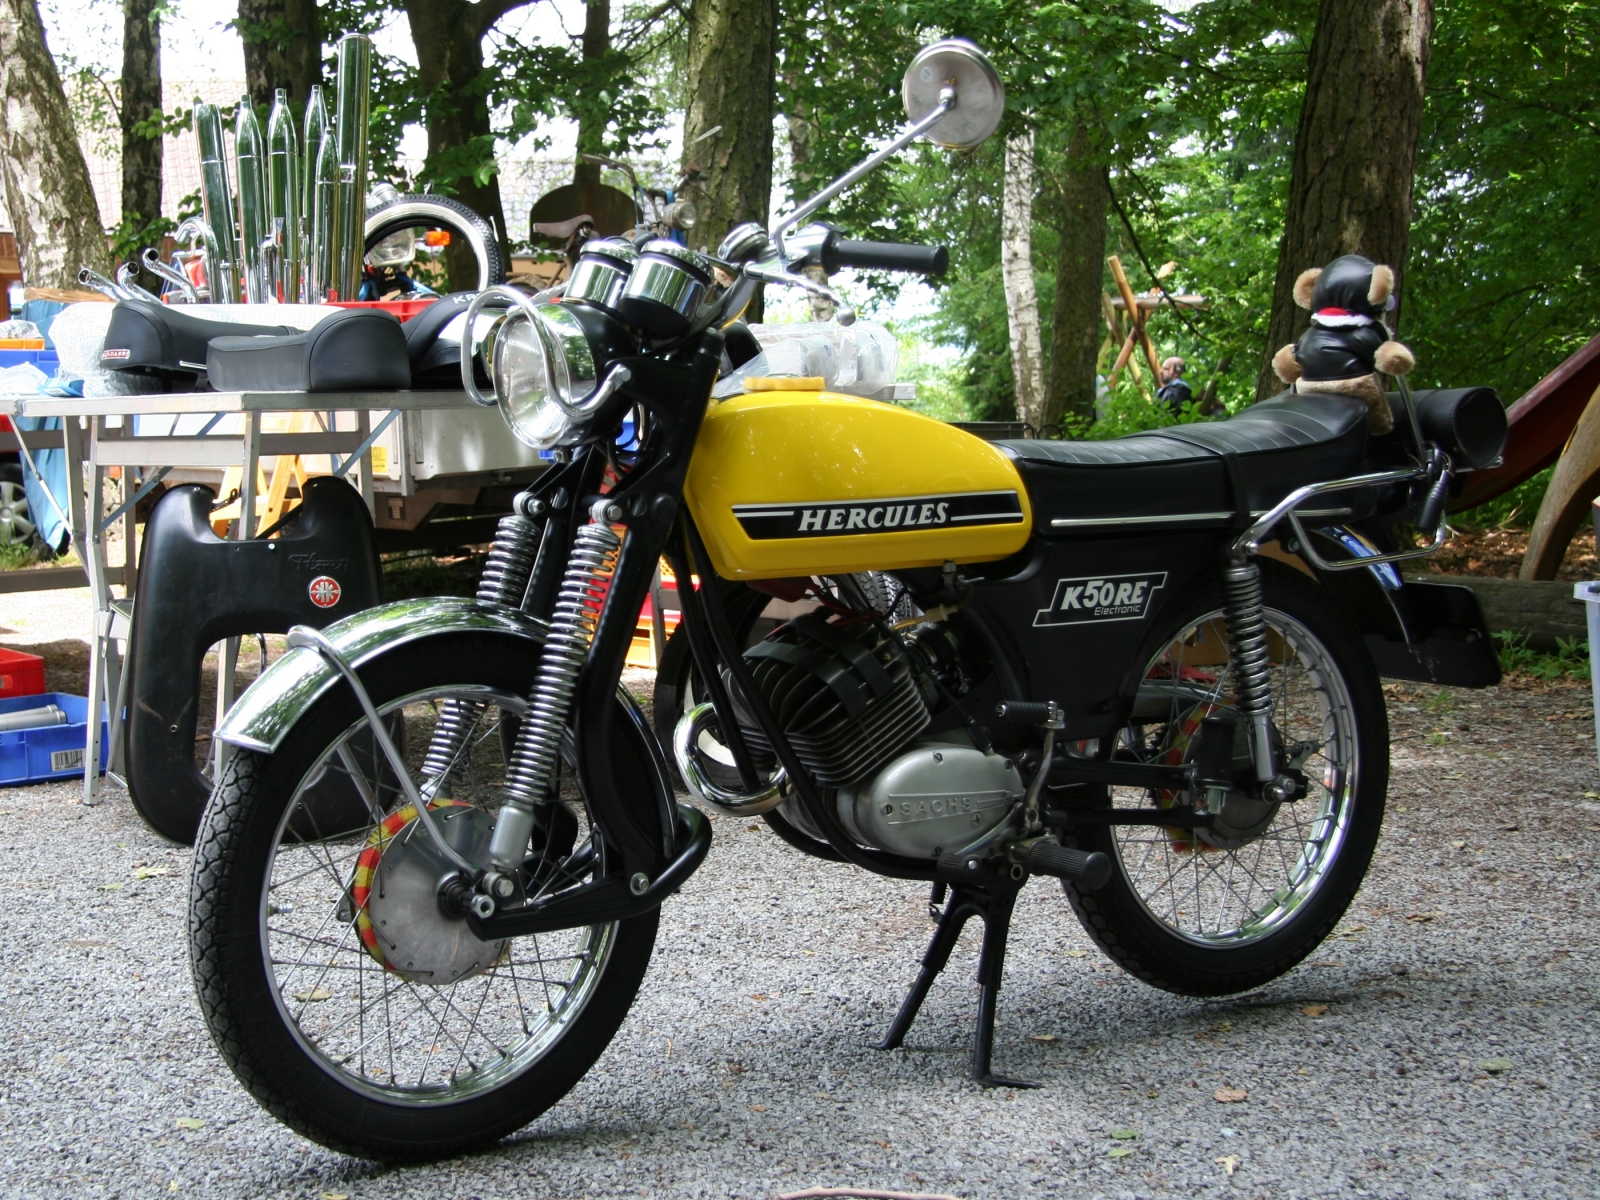 Hercules K 50 RE Elektronic